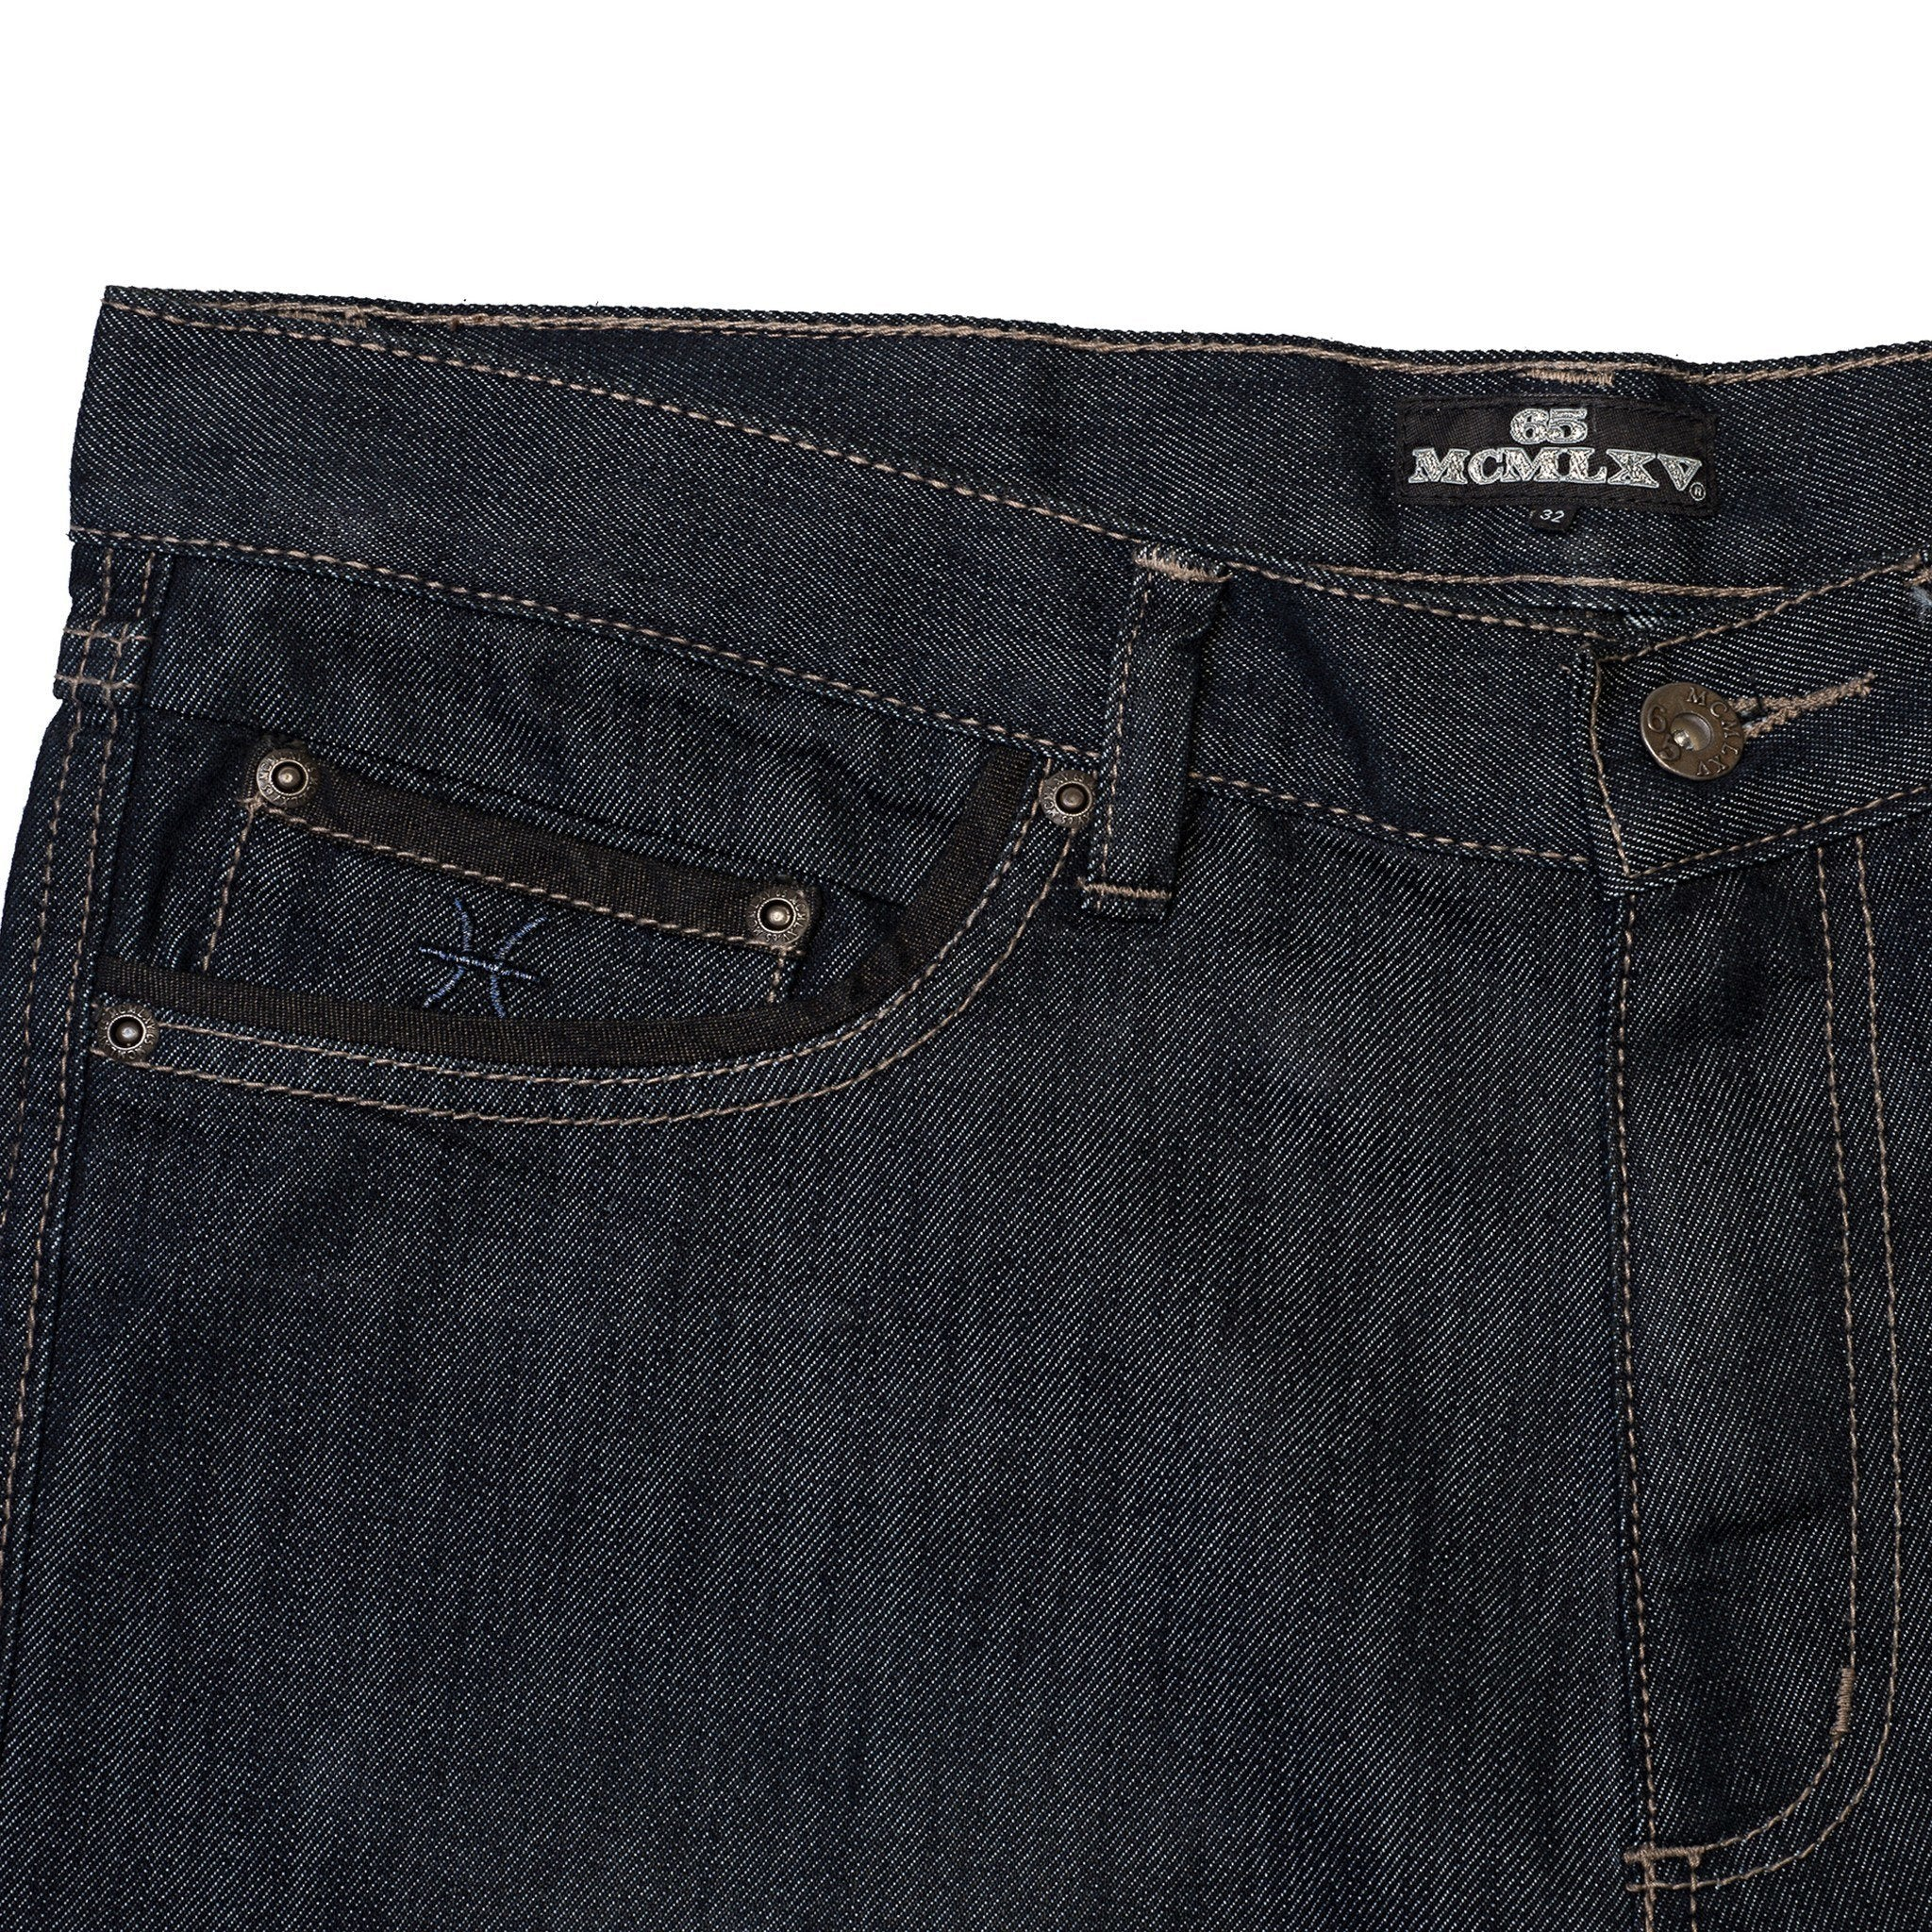 Men's Premium Denim Dark Wash Jean